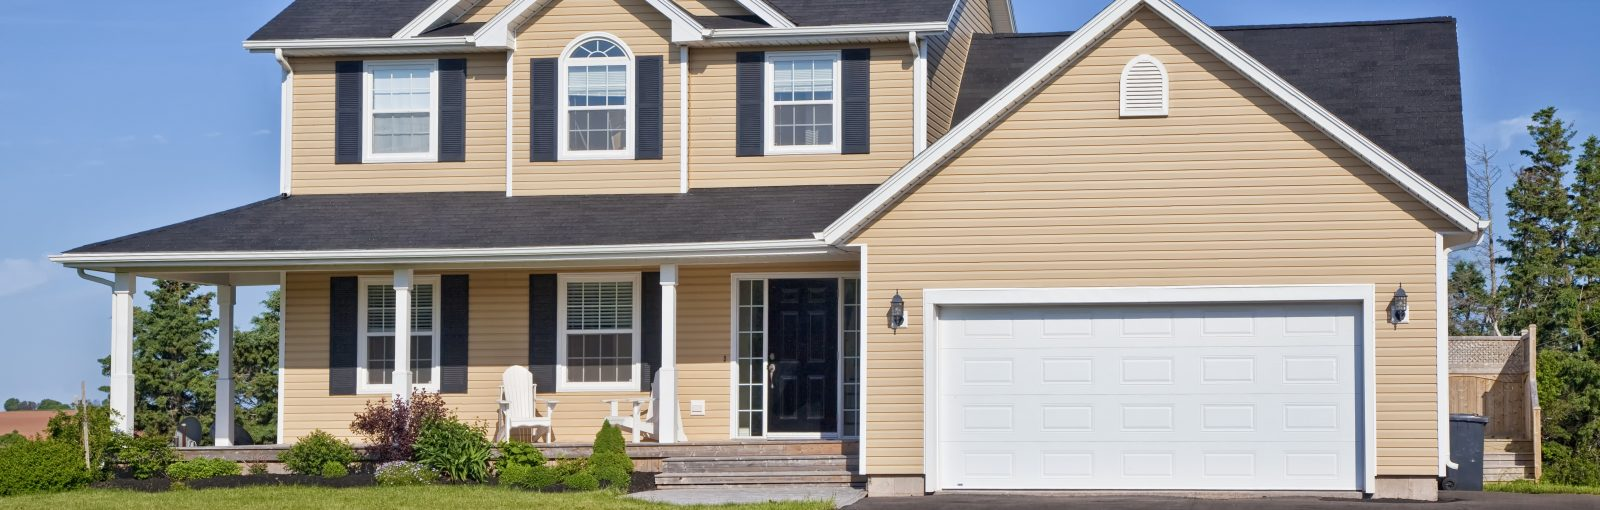 Siding Contractors New Jersey.